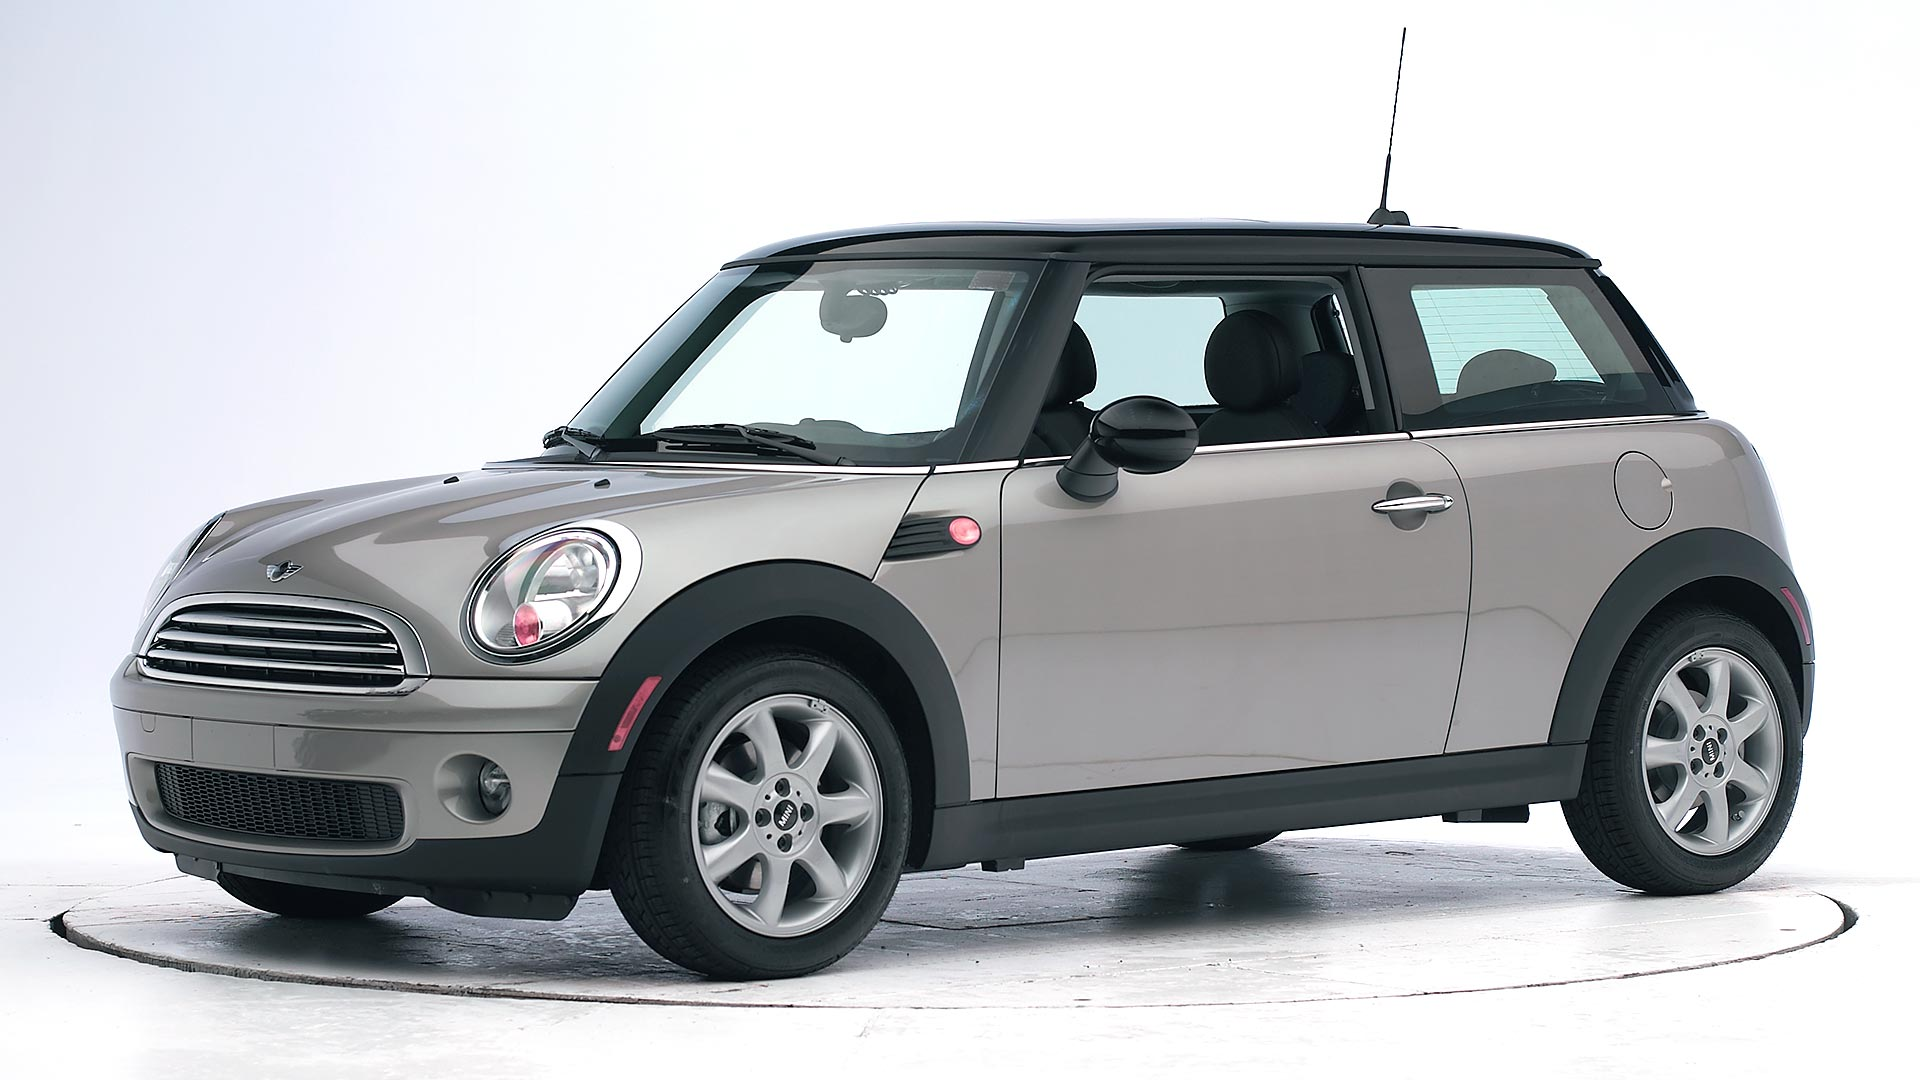 2008 Mini Cooper 2-door hatchback